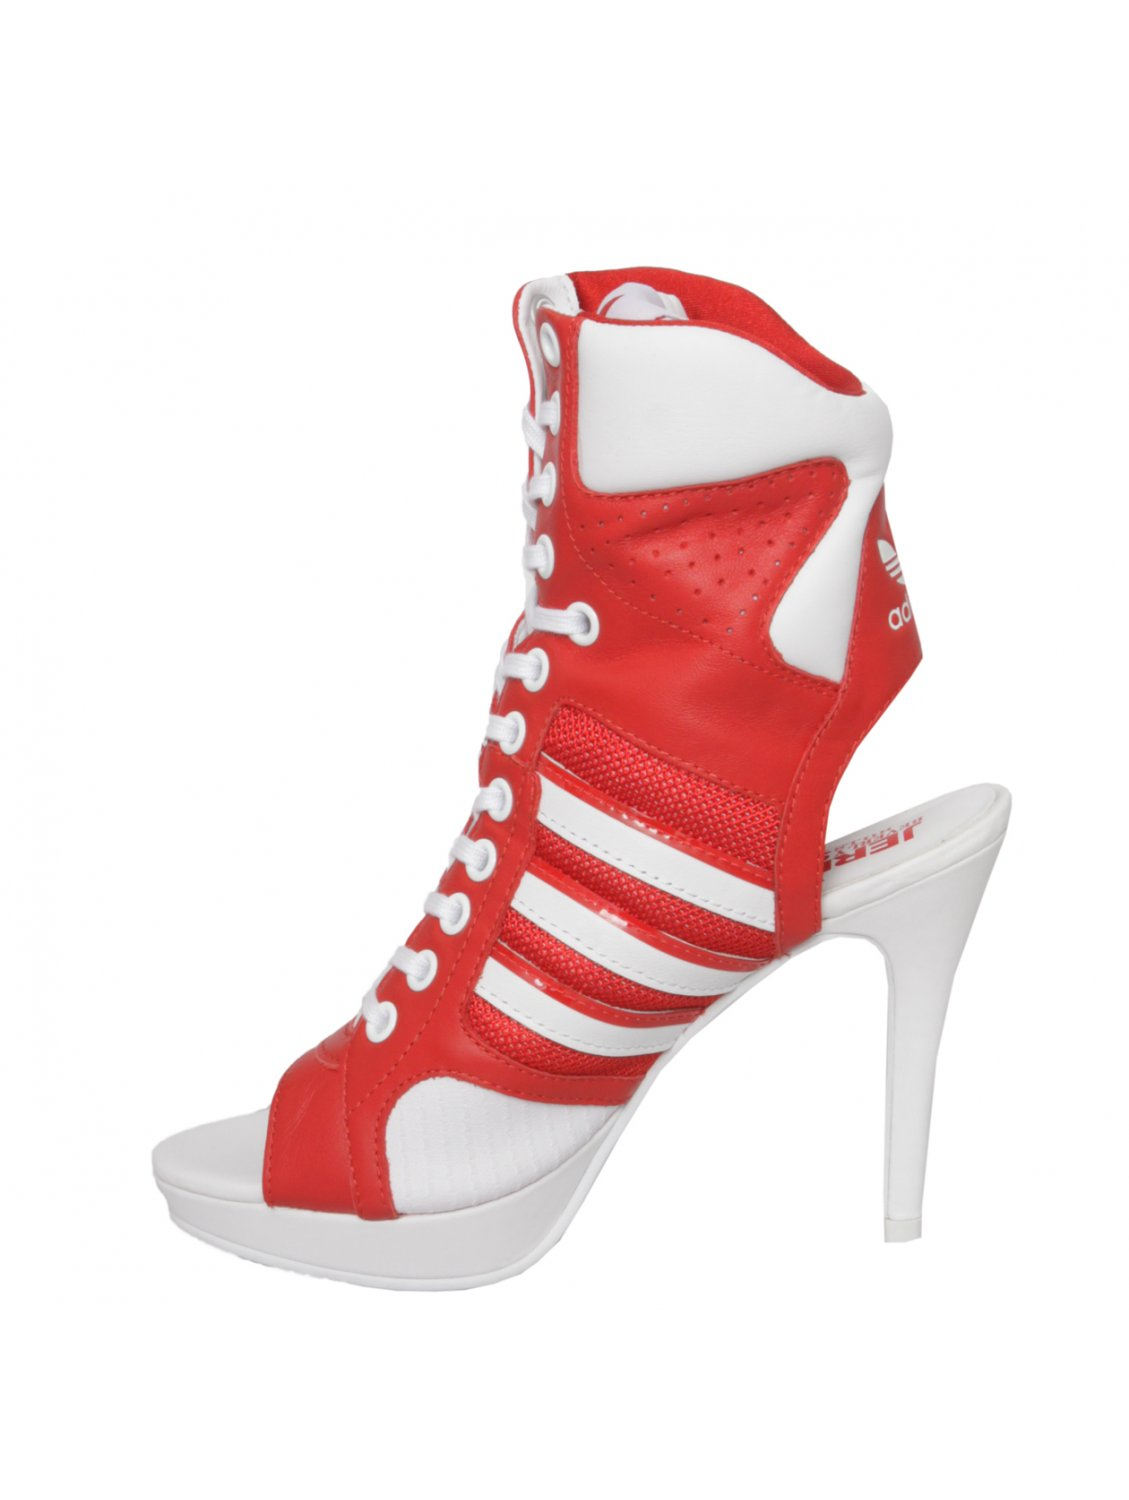 Jeremy Scott For Adidas Lace Up High Heels Red in Red | Lyst